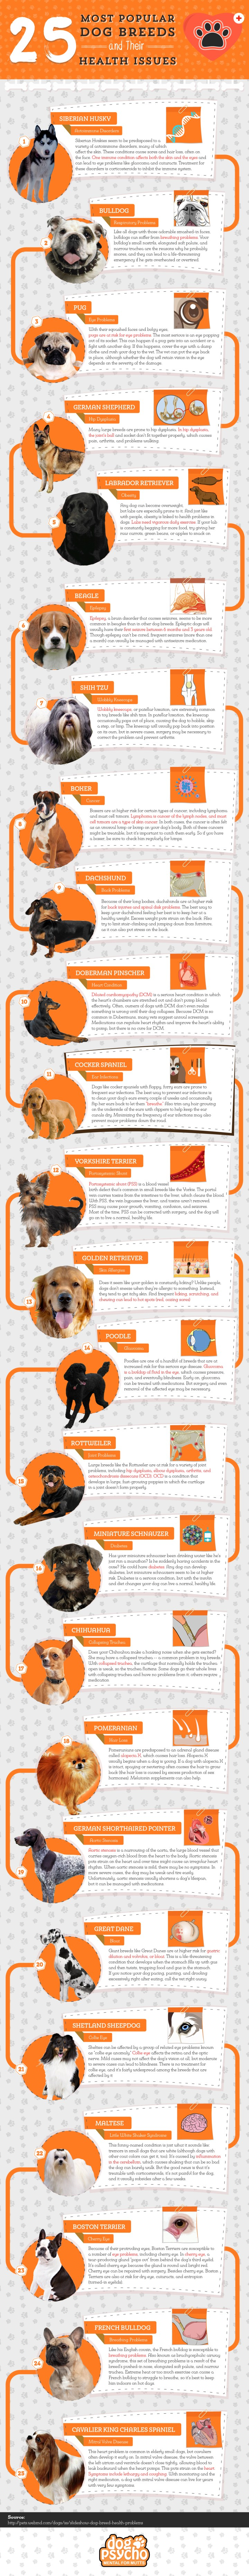 dog breeds and their common health problems